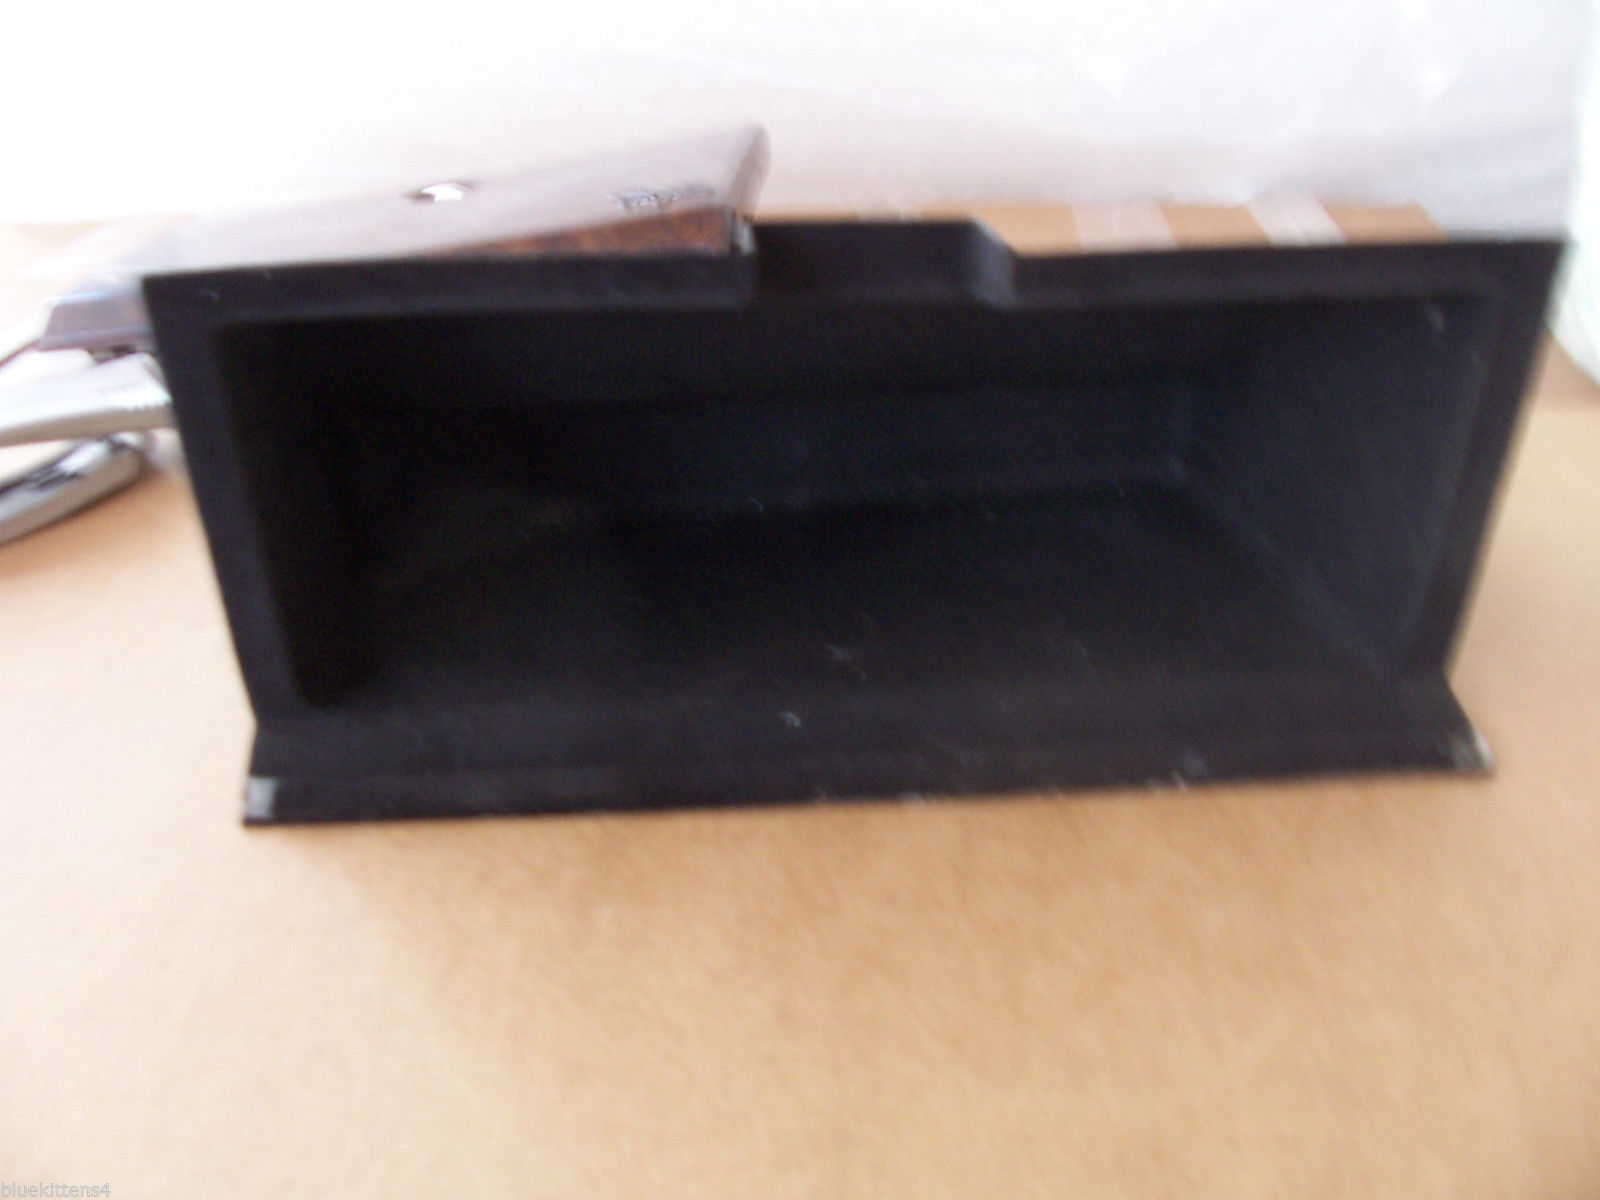 1991 CADILLAC BROUGHAM FLEETWOOD GLOVE COMPARTMENT INSERT ORIGINAL OEM PART